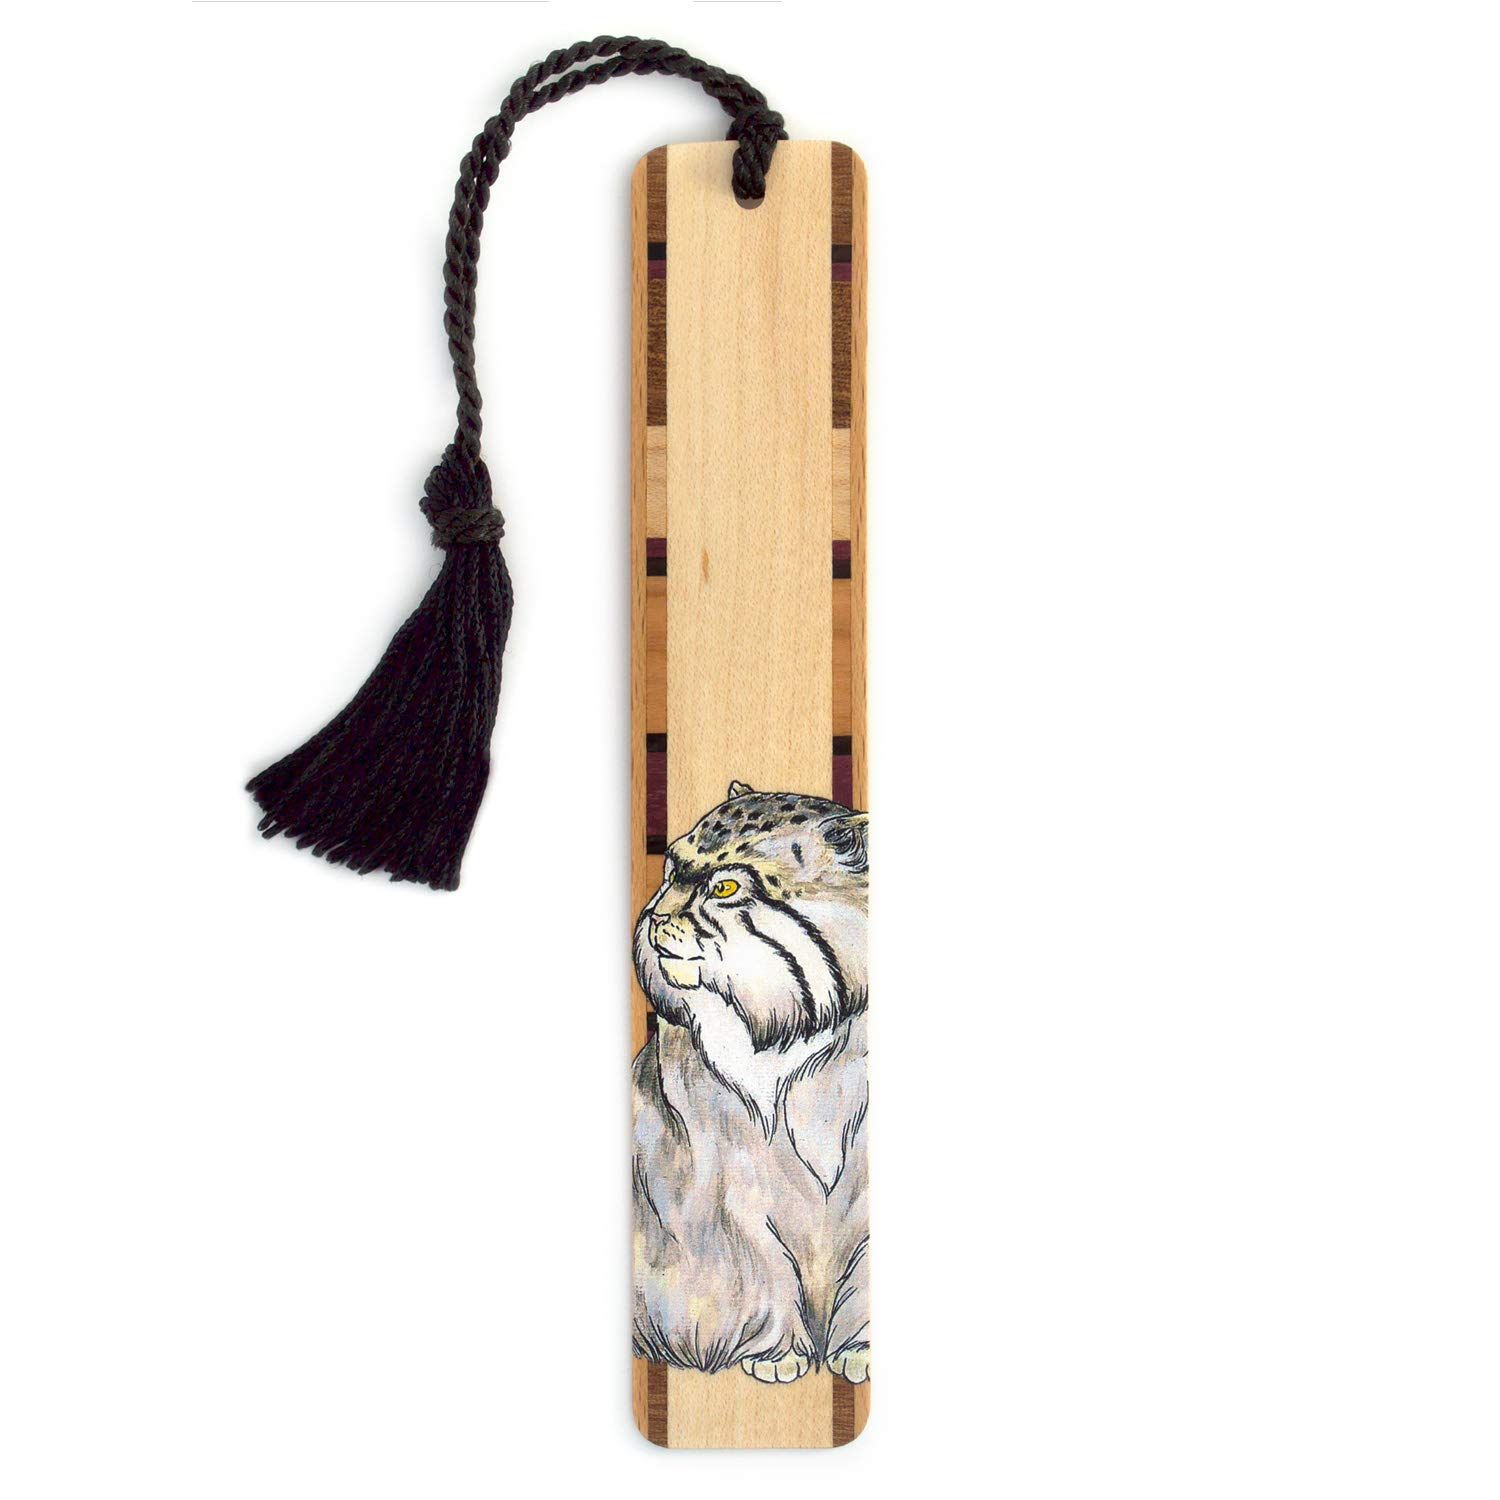 Wood Bookmark with Cat Drawing by Kathleen Barsness - Includes Black Rope Tassel - American Made